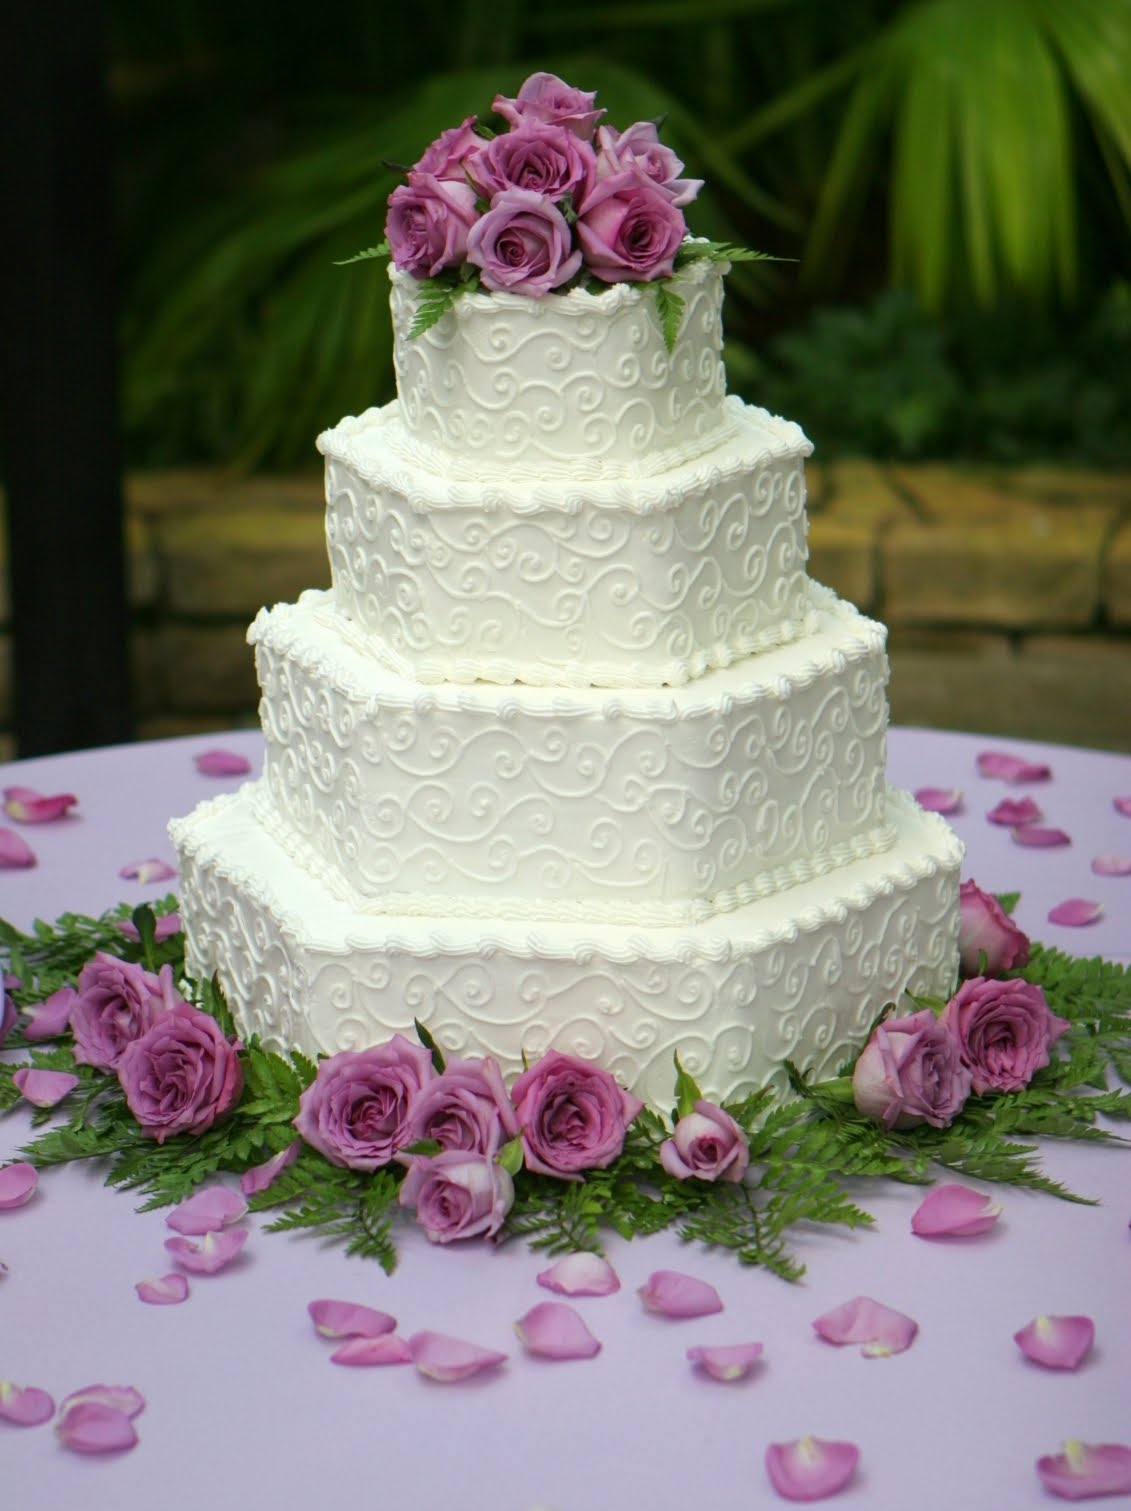 beautiful wedding cakes without fondant creativeevents 6 27 10 7 4 10 11231